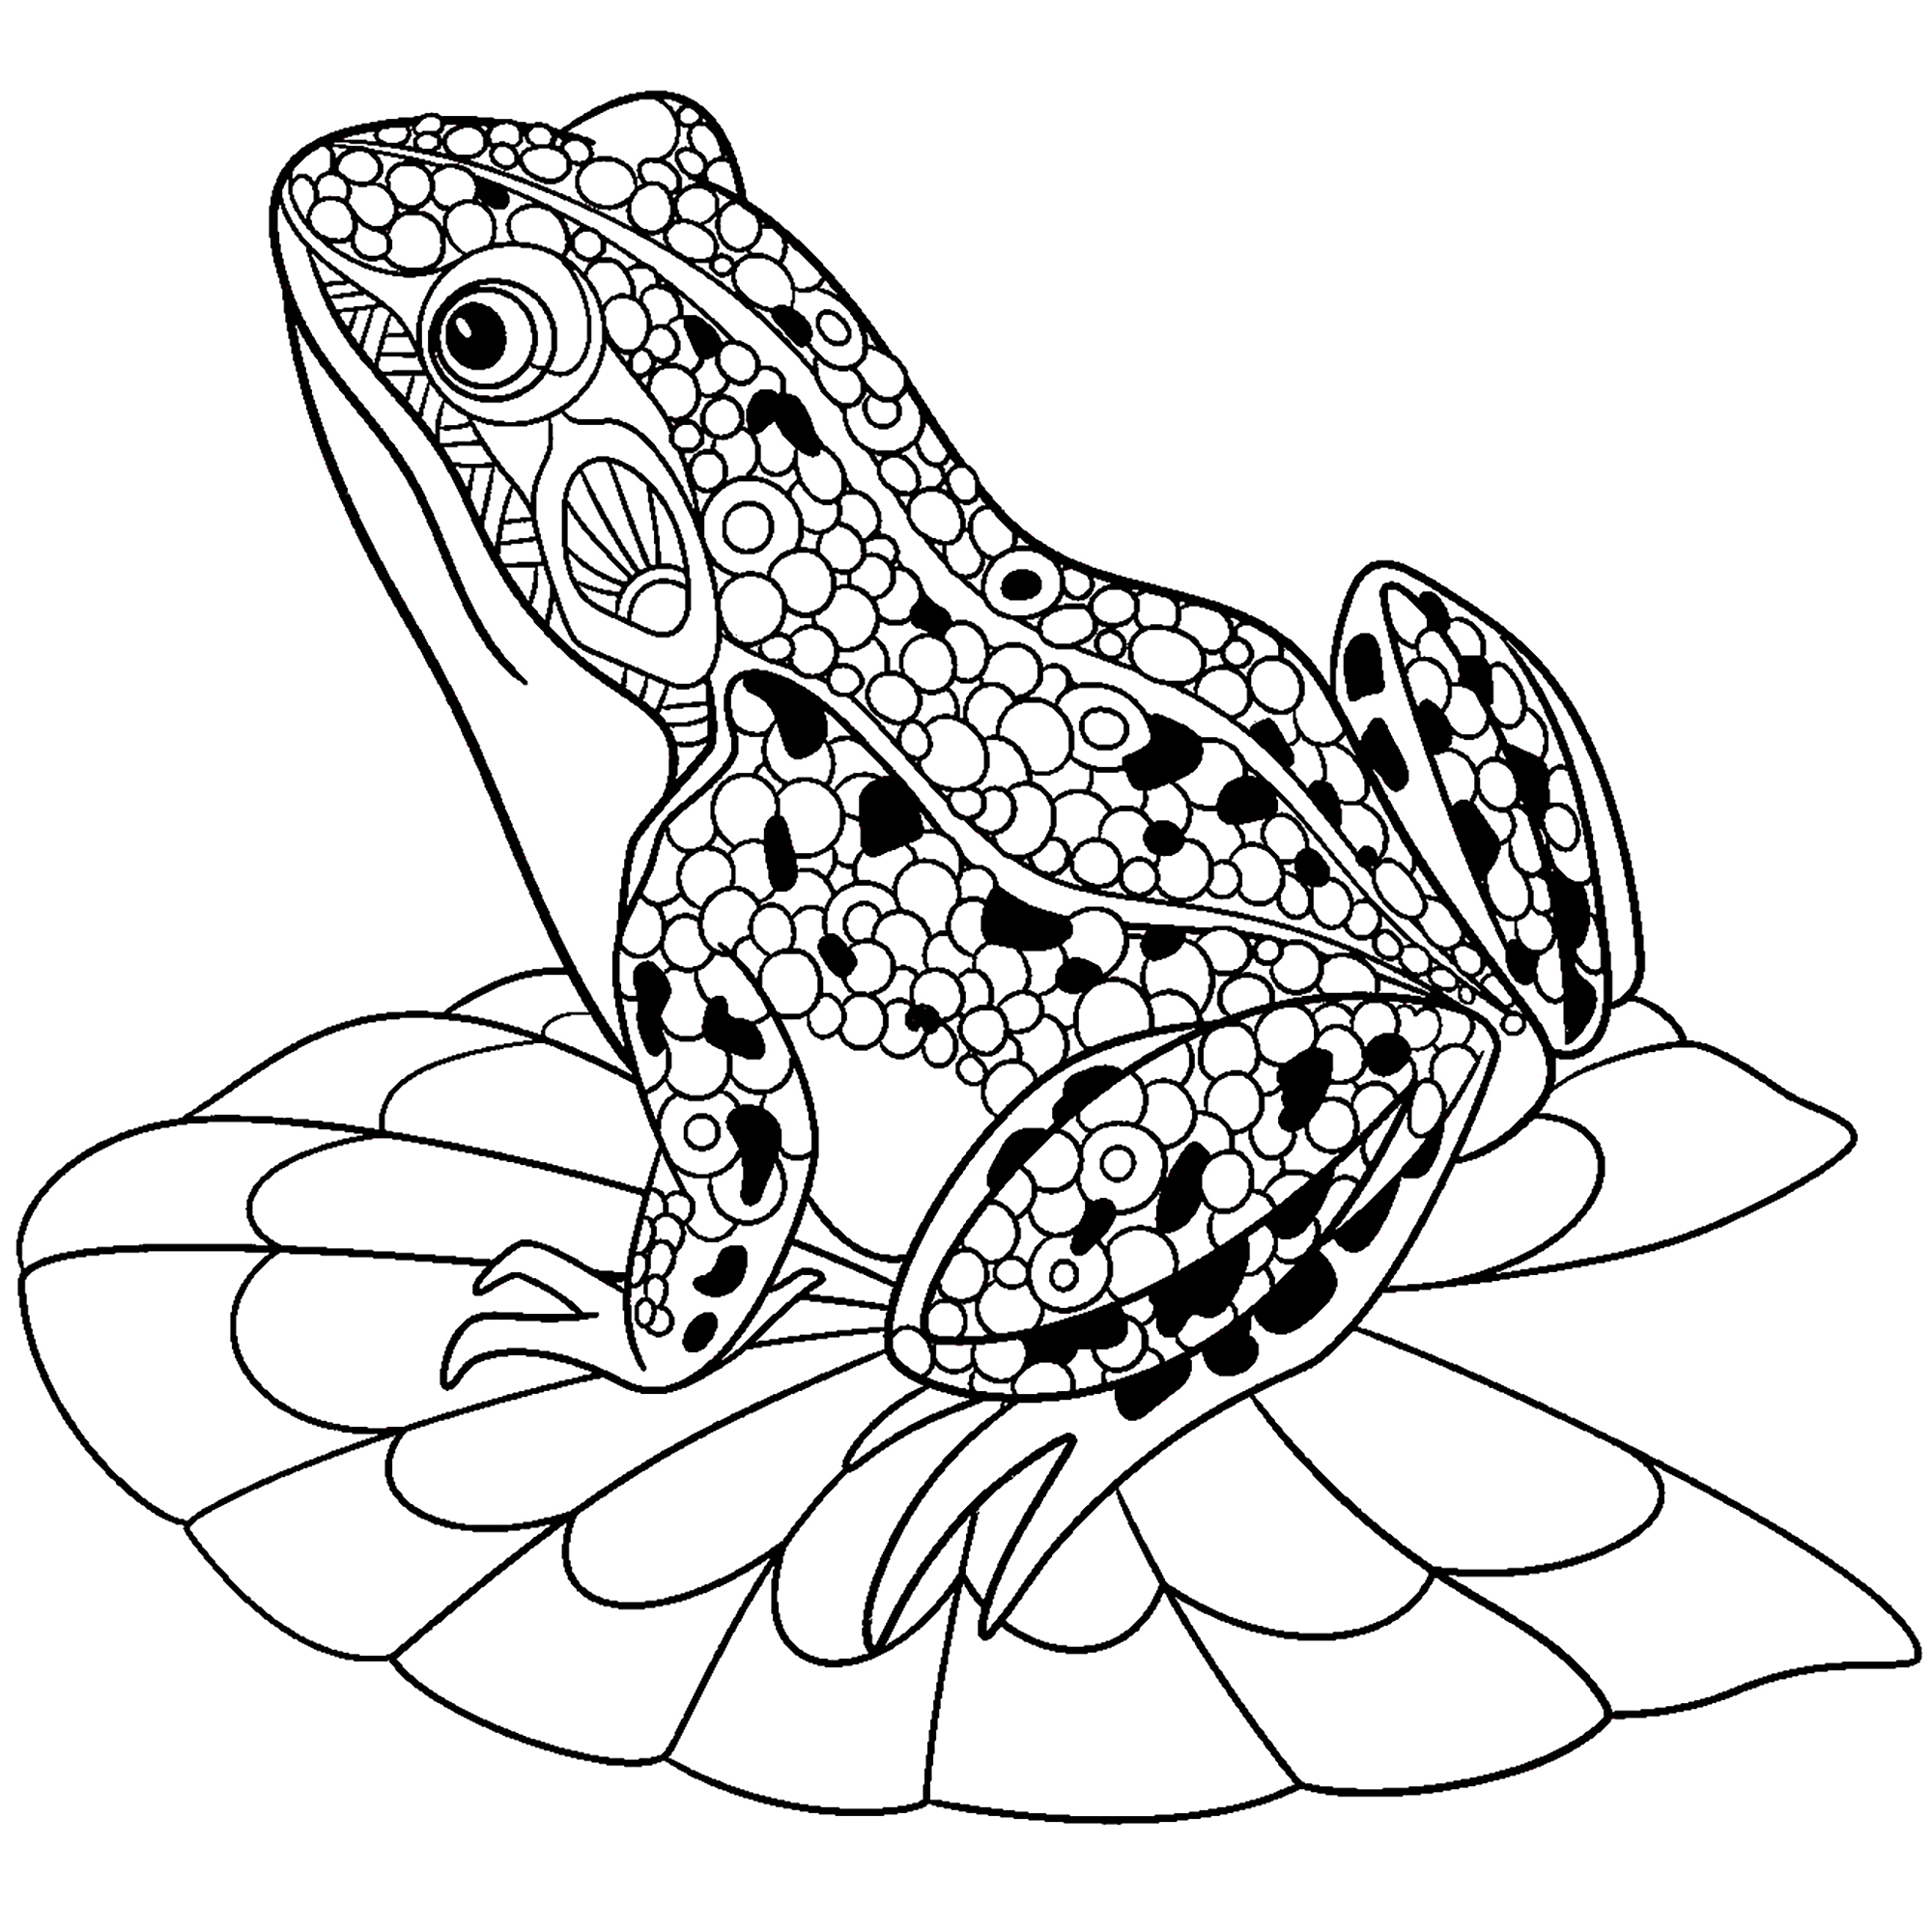 coloring images of frog realistic frog coloring pages free download on clipartmag frog images of coloring